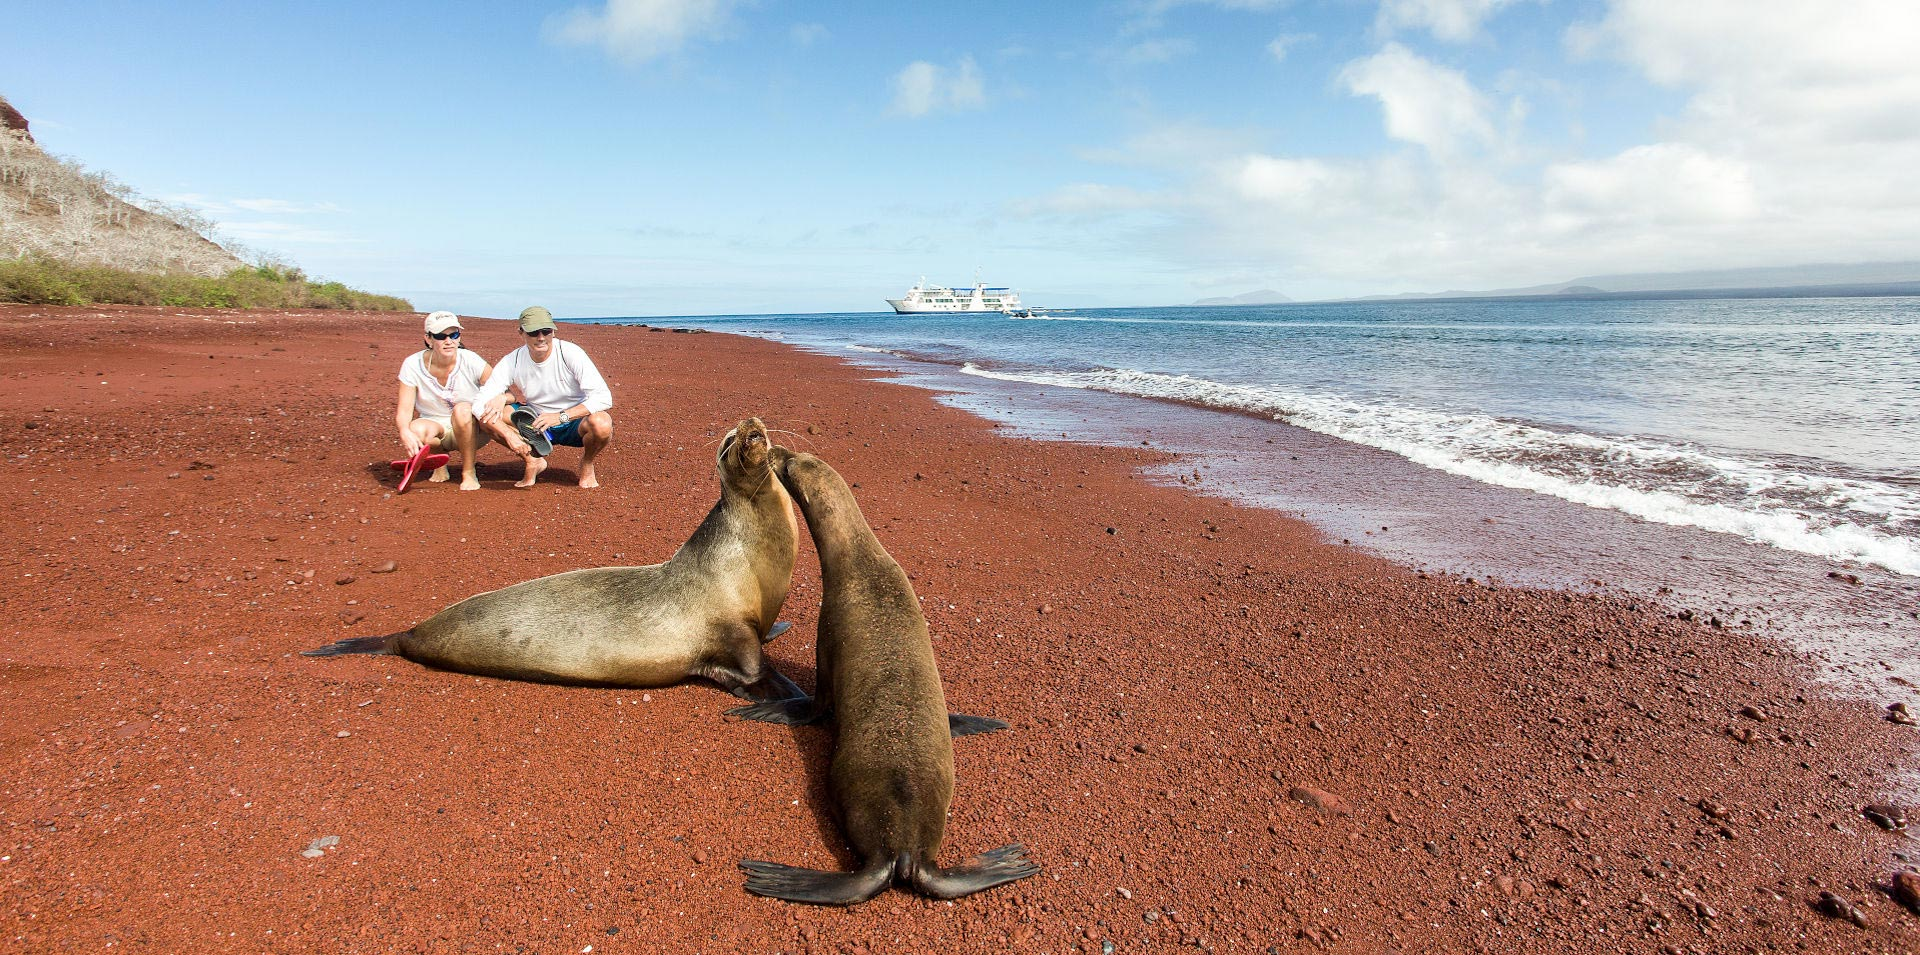 Tourists enjoying the view of Galapagos sea lions